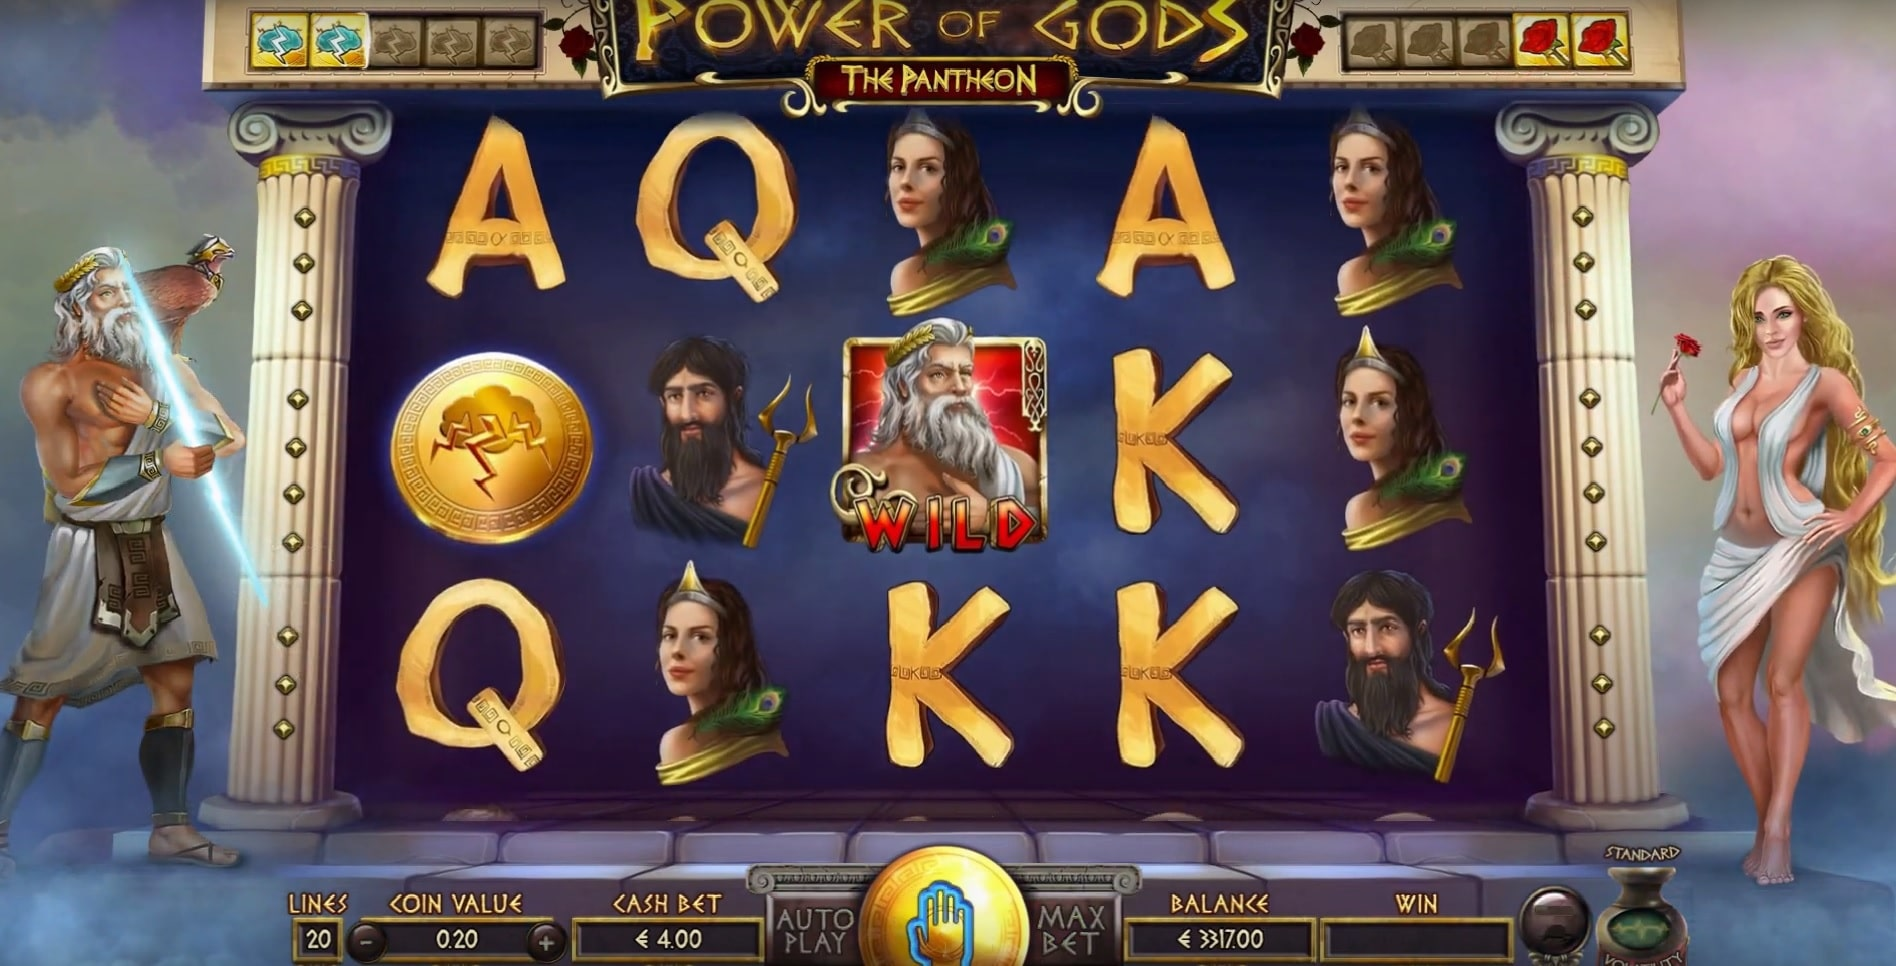 Power of Gods: The Pantheon slot showing off the whole Pantheon of Greek Gods.